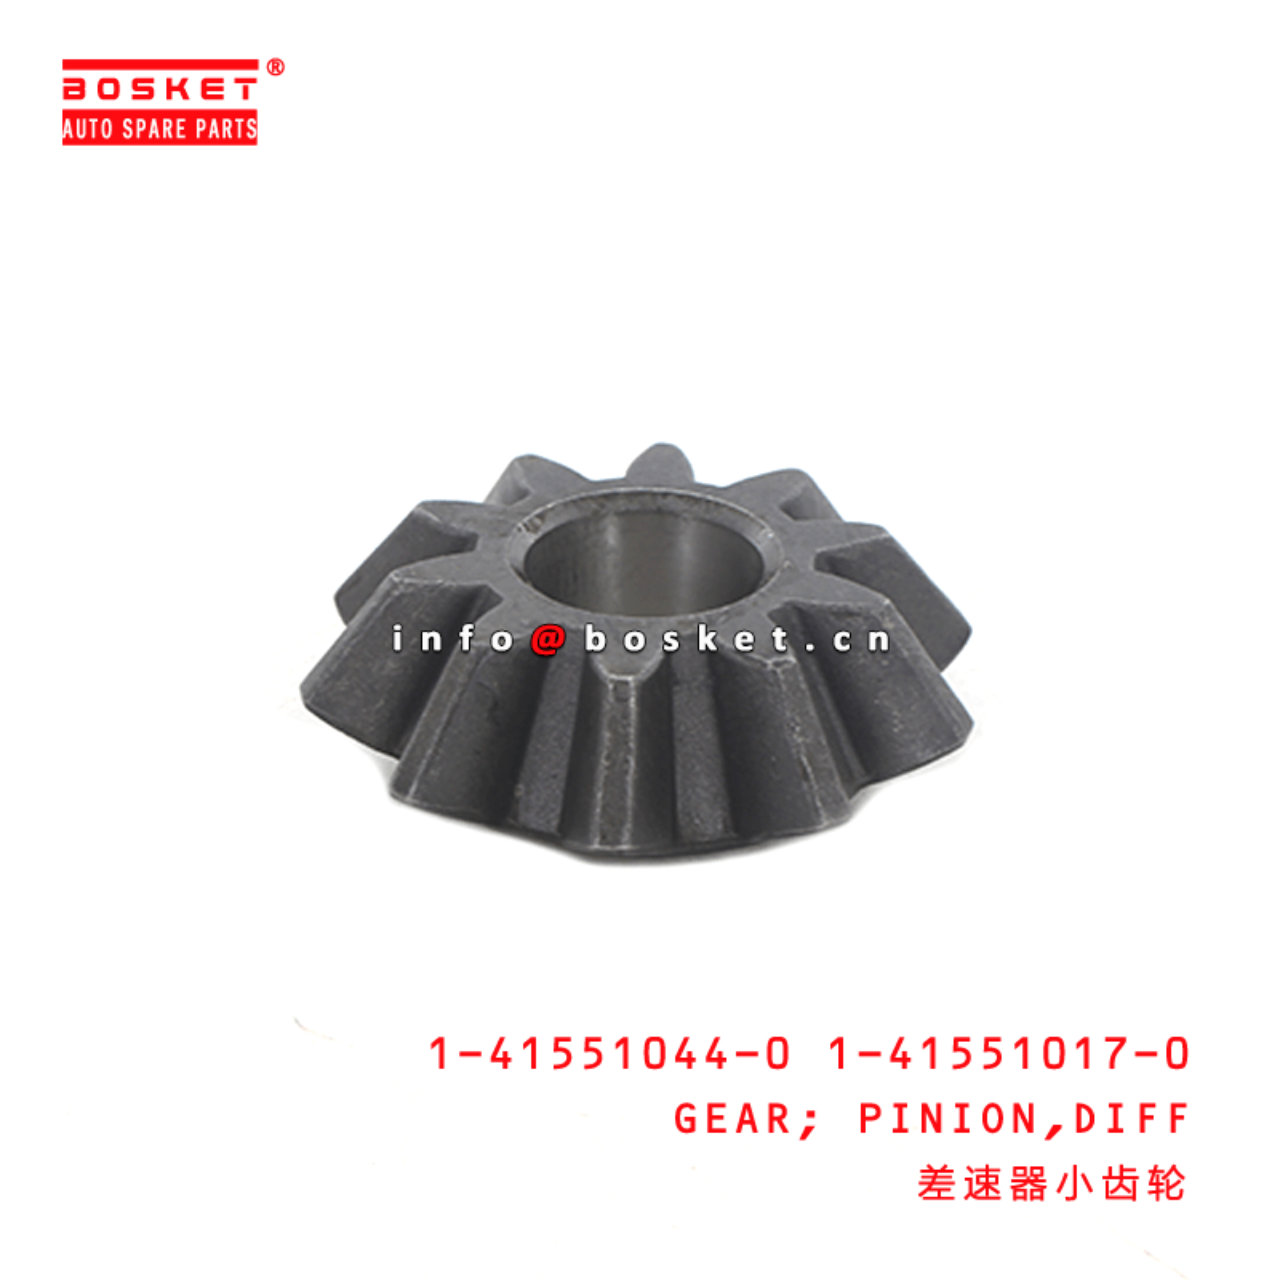 1-41551044-0 1-41551017-0 Differential Pinion Gear...